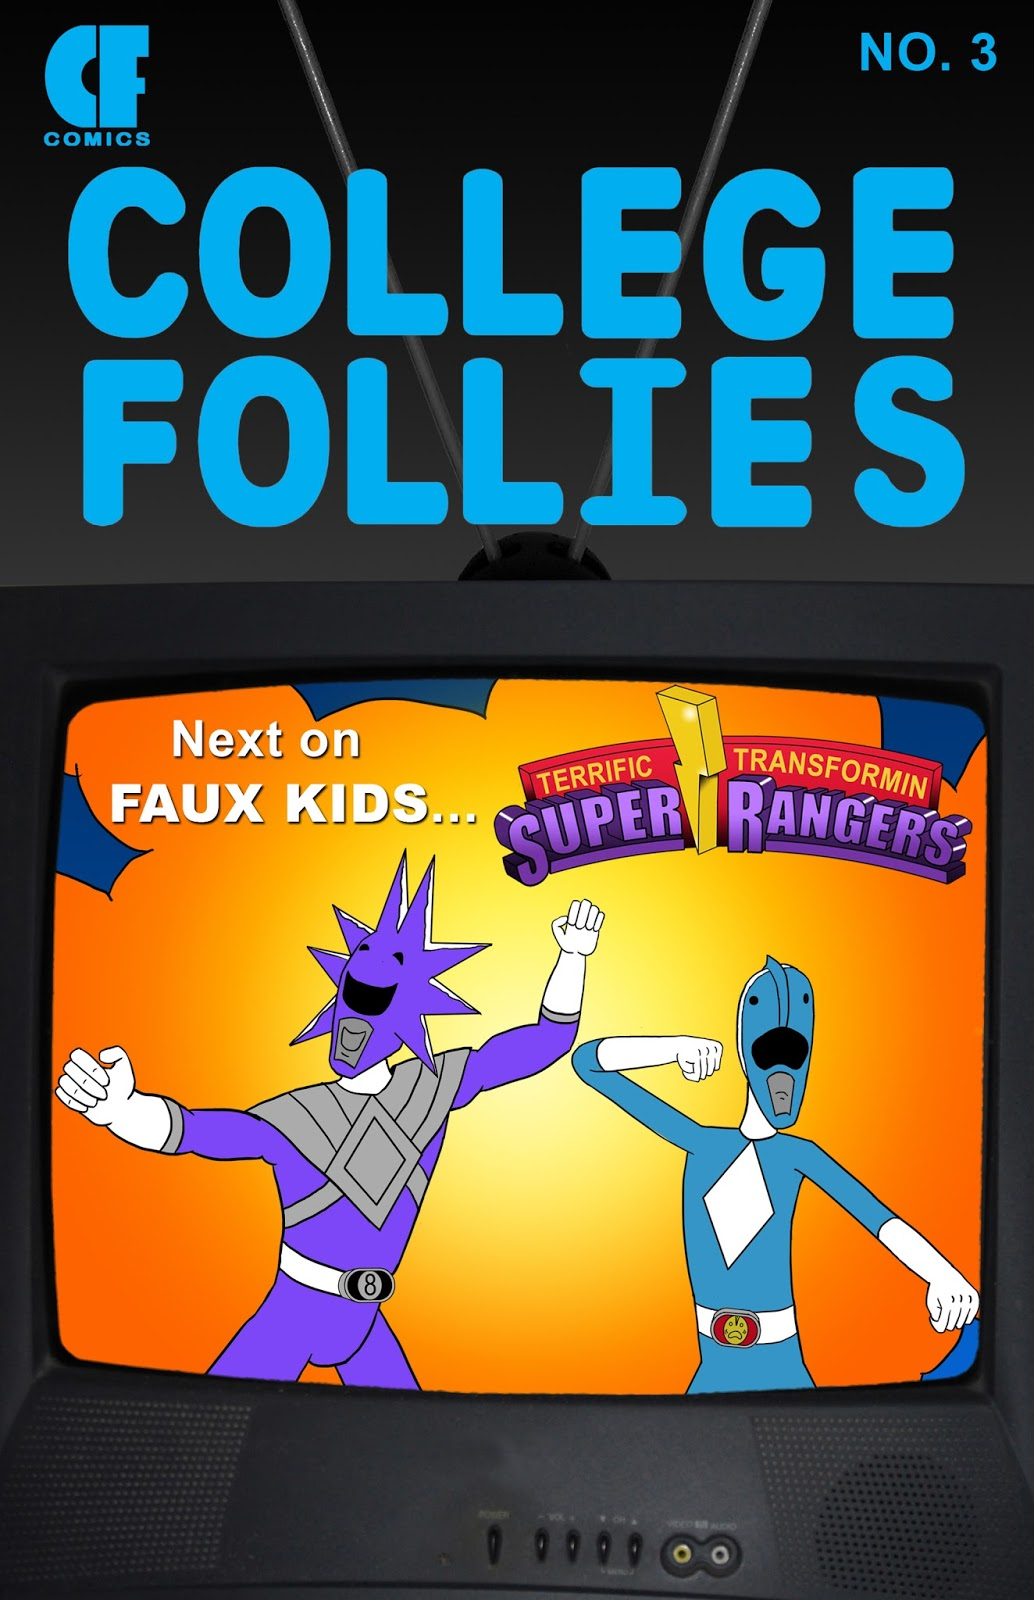 http://collegefolliescomic.blogspot.com/p/get-college-follies-3.html